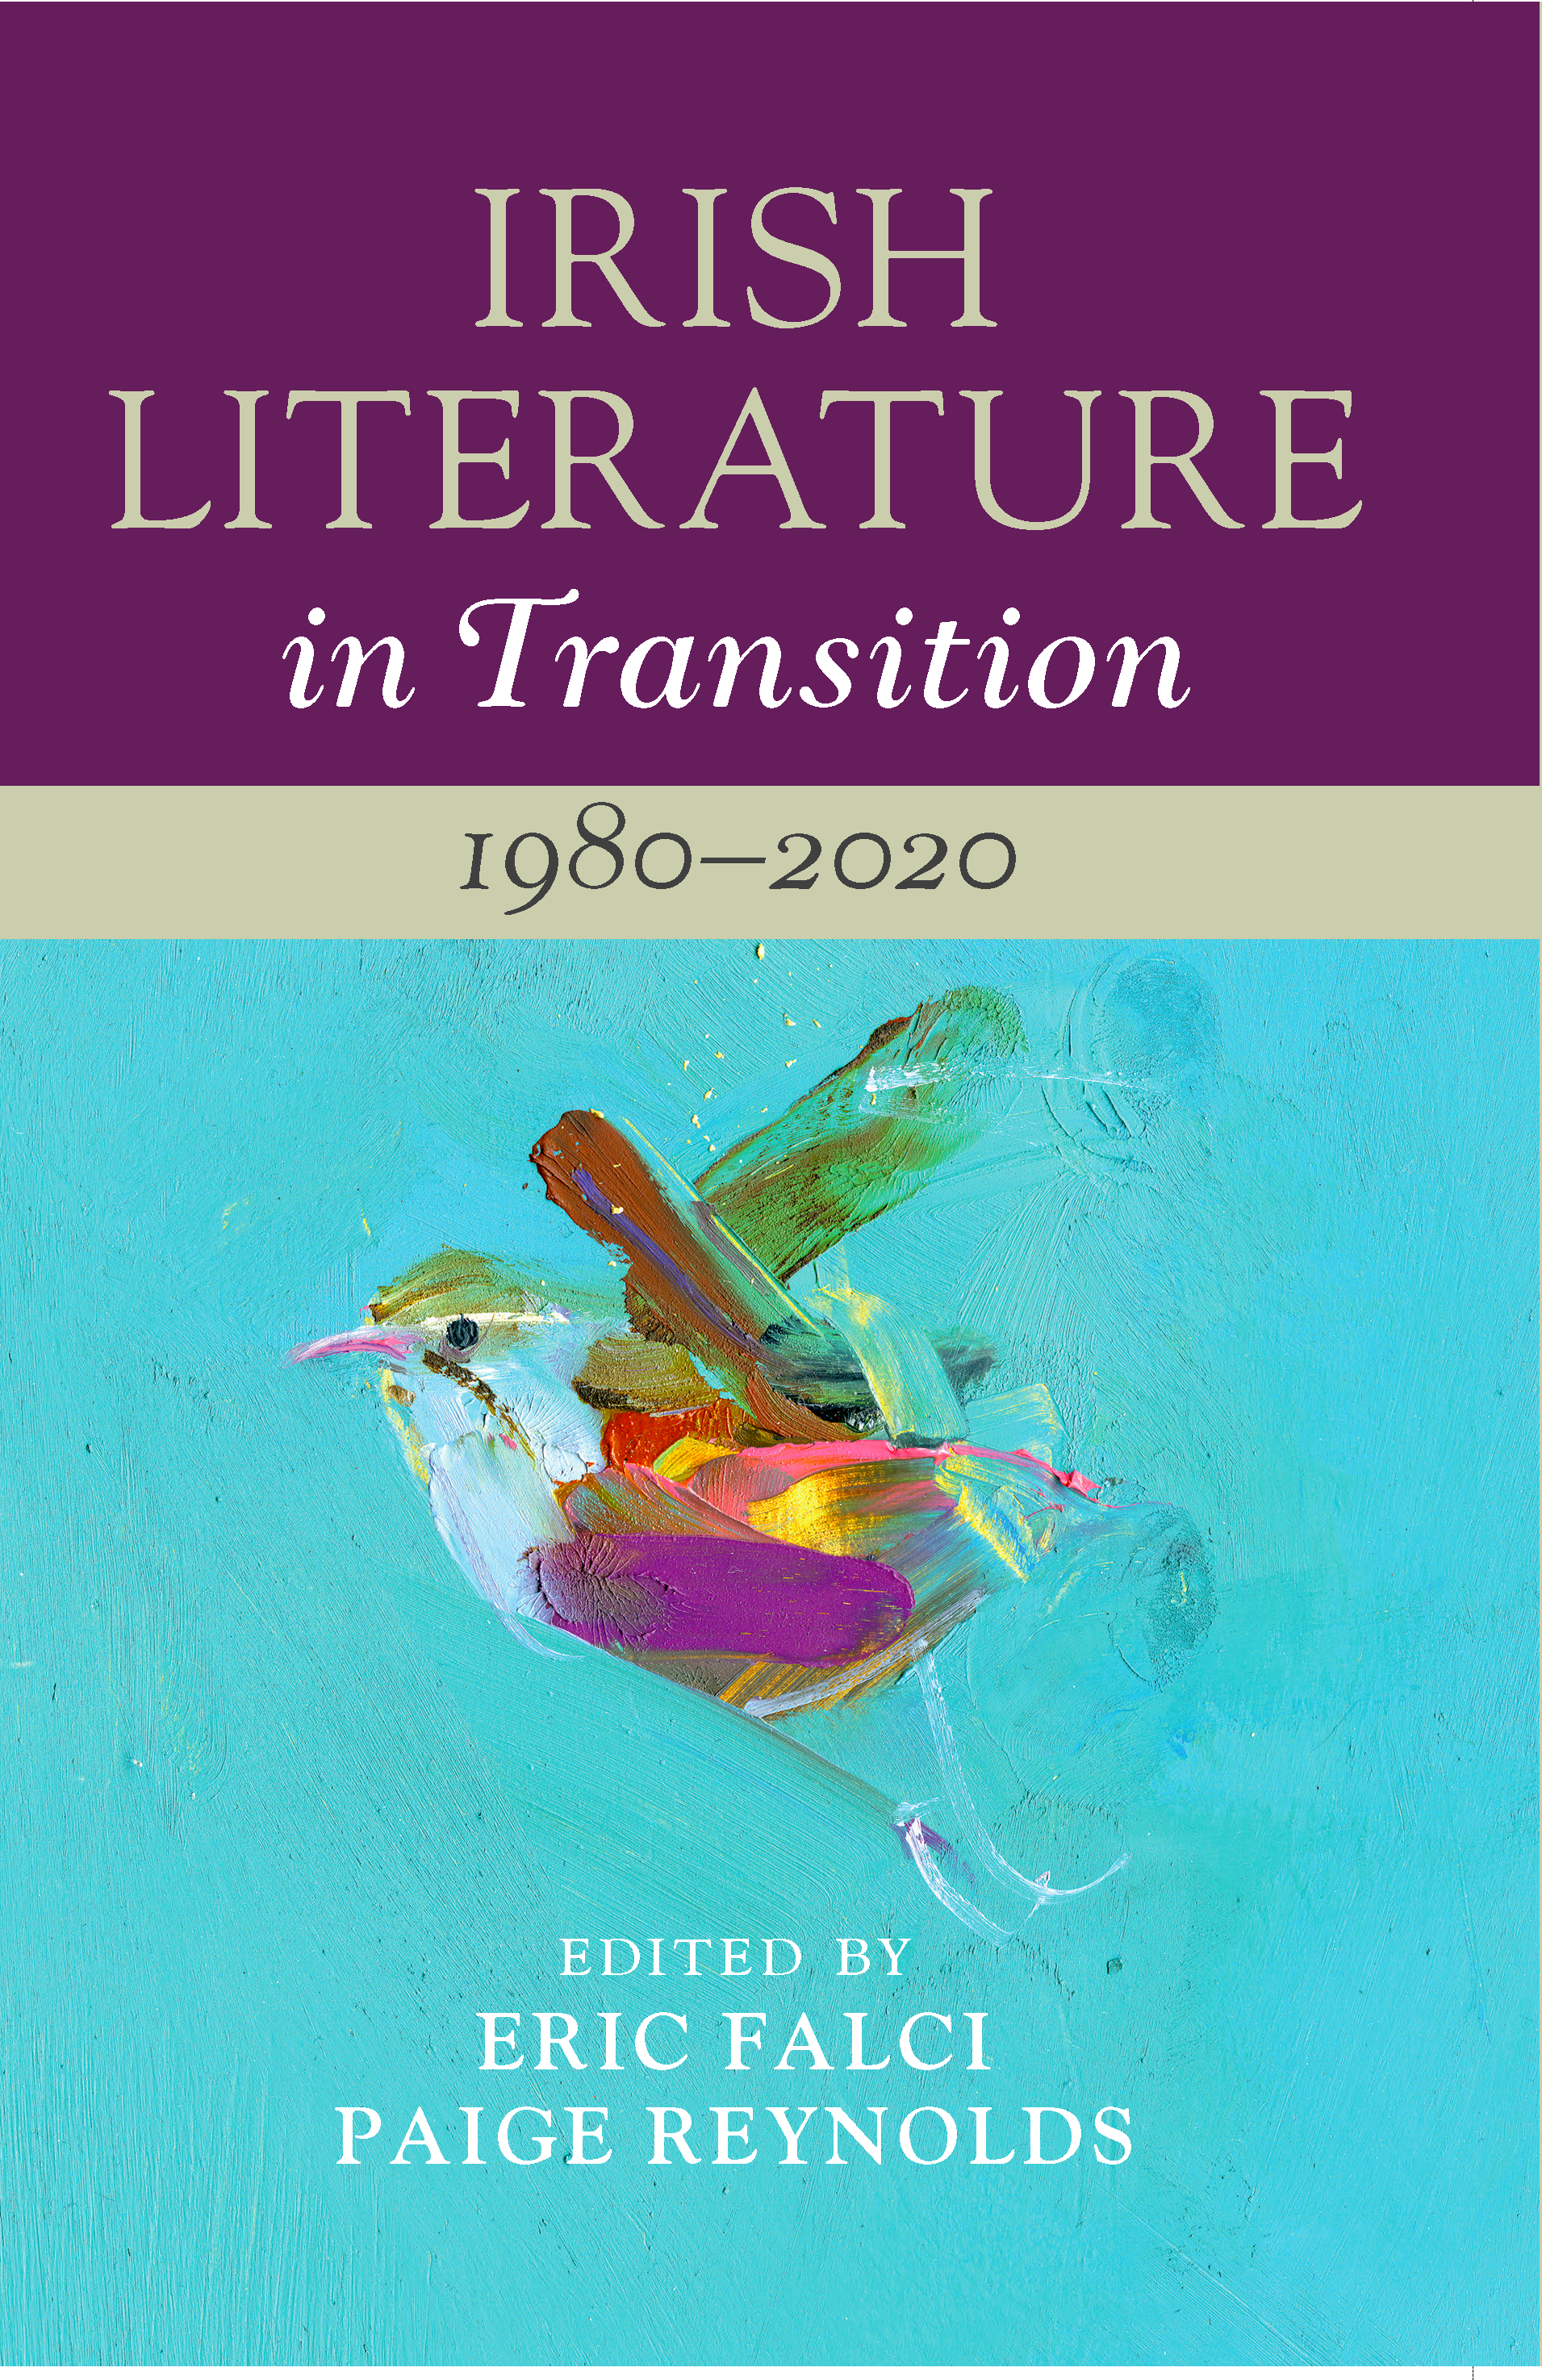 Irish Literature in Transition, 1980-2020